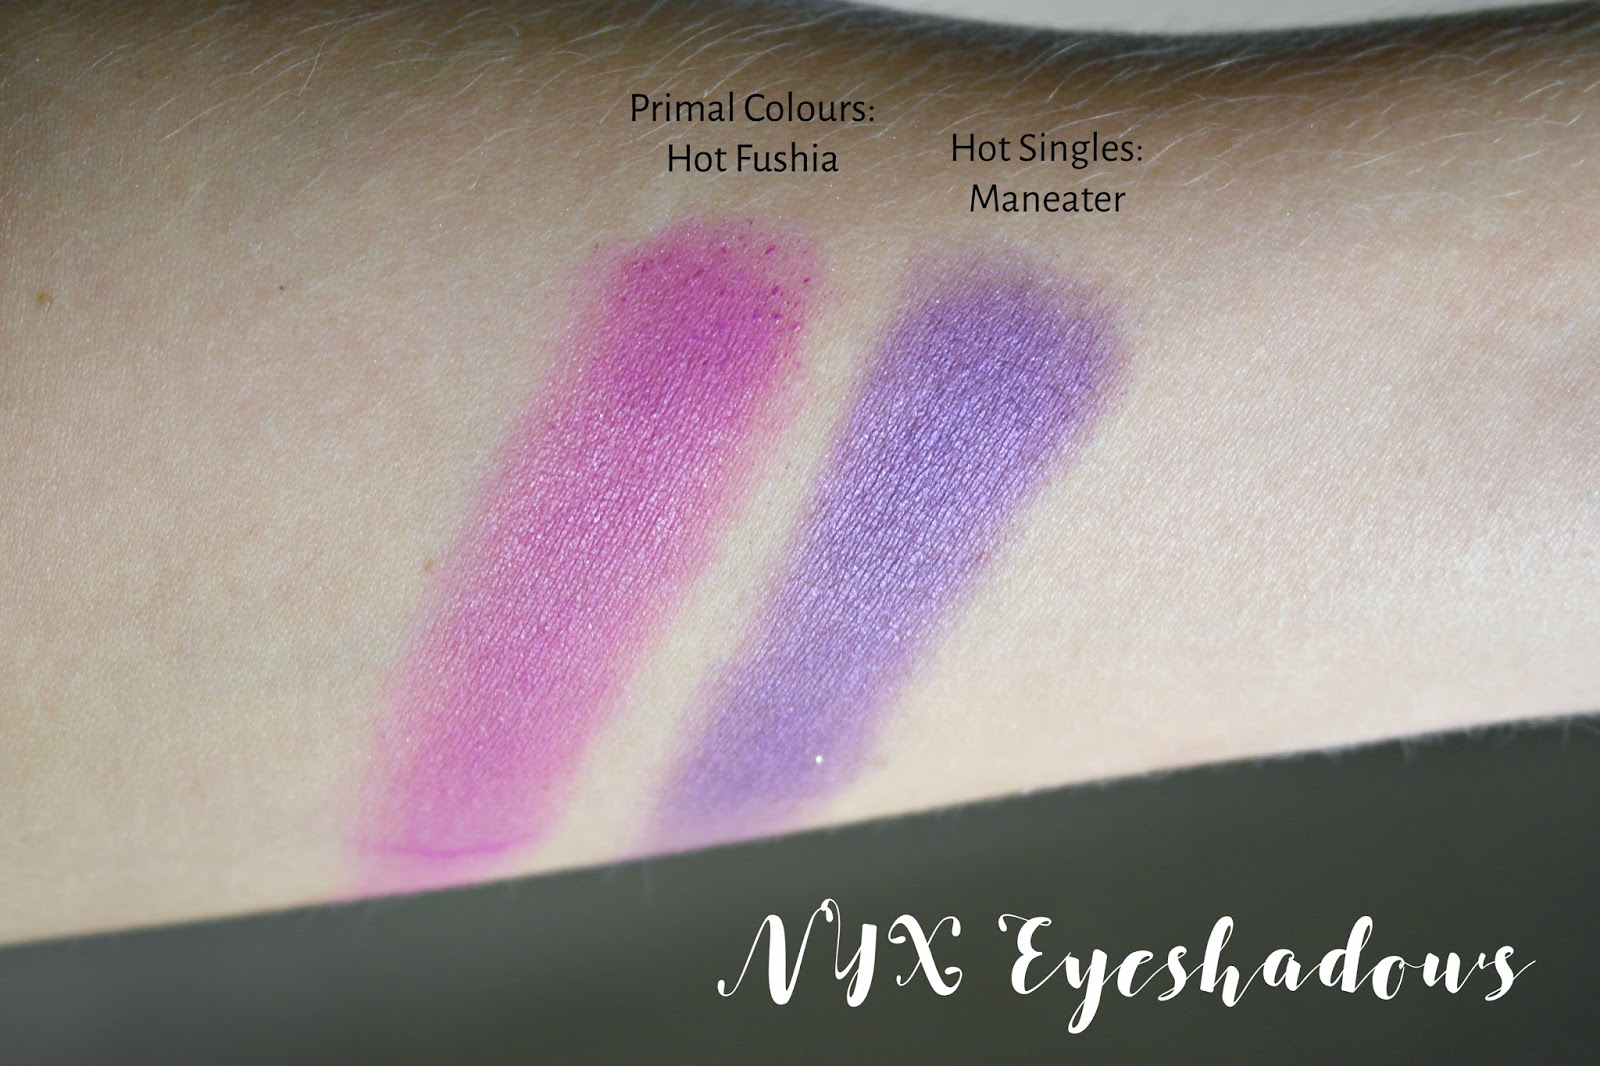 NYX primal colour in Hot Fushia and Hot singles eyeshadow in Maneater swatches